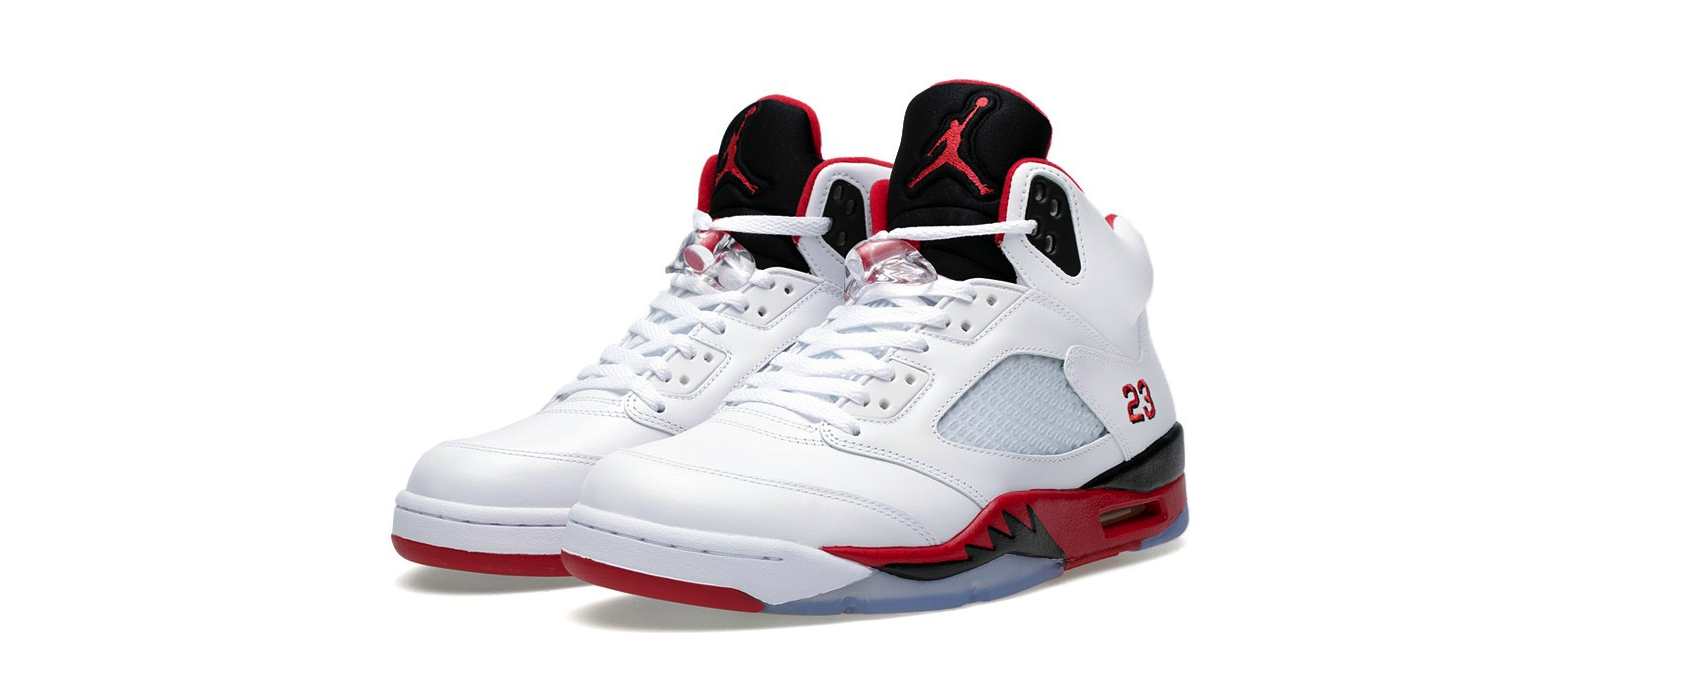 Nike Air Jordan V Retro Fire Red G.S.